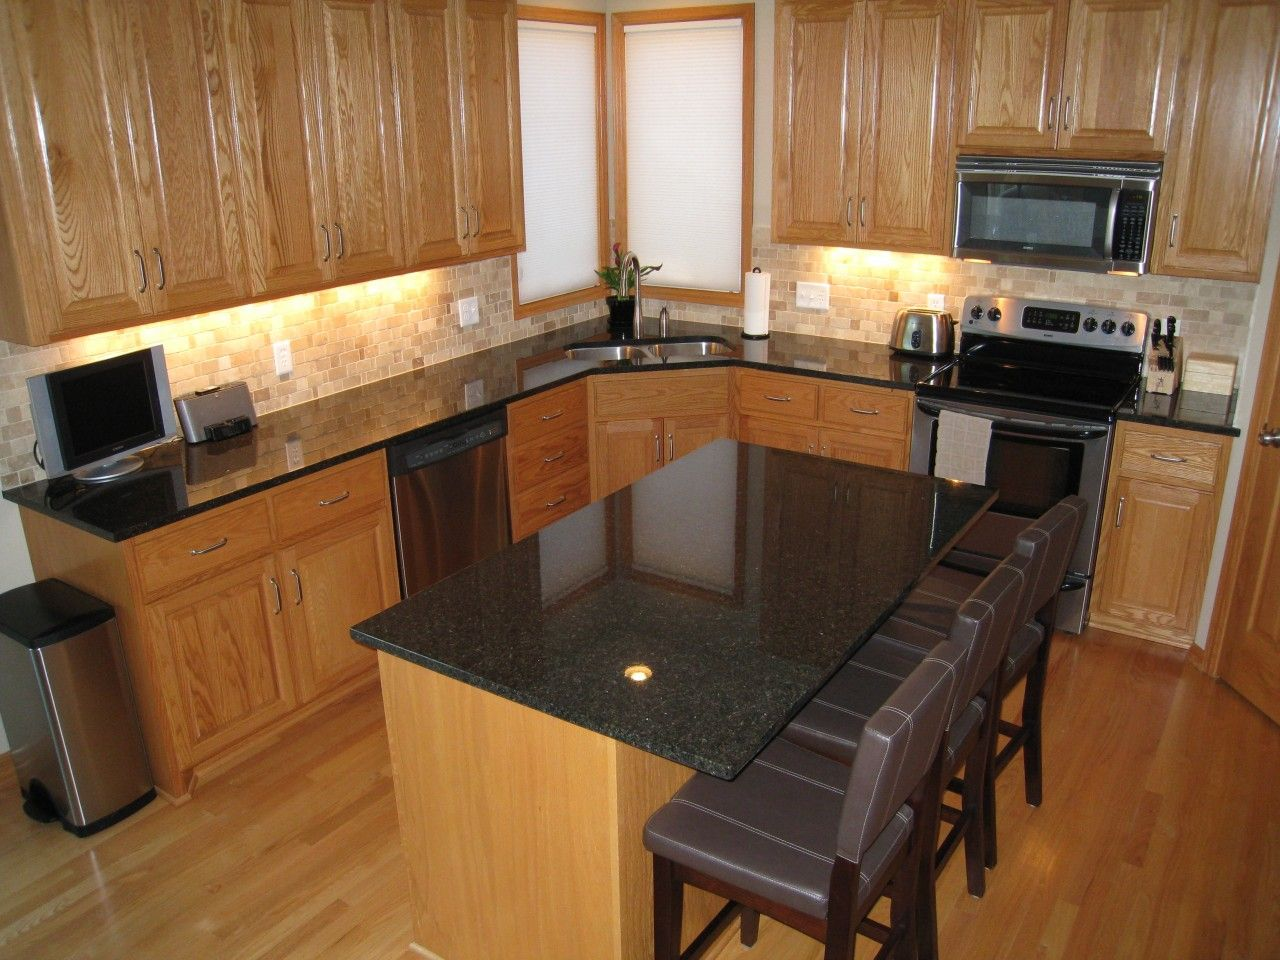 Dark grey countertops with oak cabinets google search for Gray kitchen cabinets with black counter